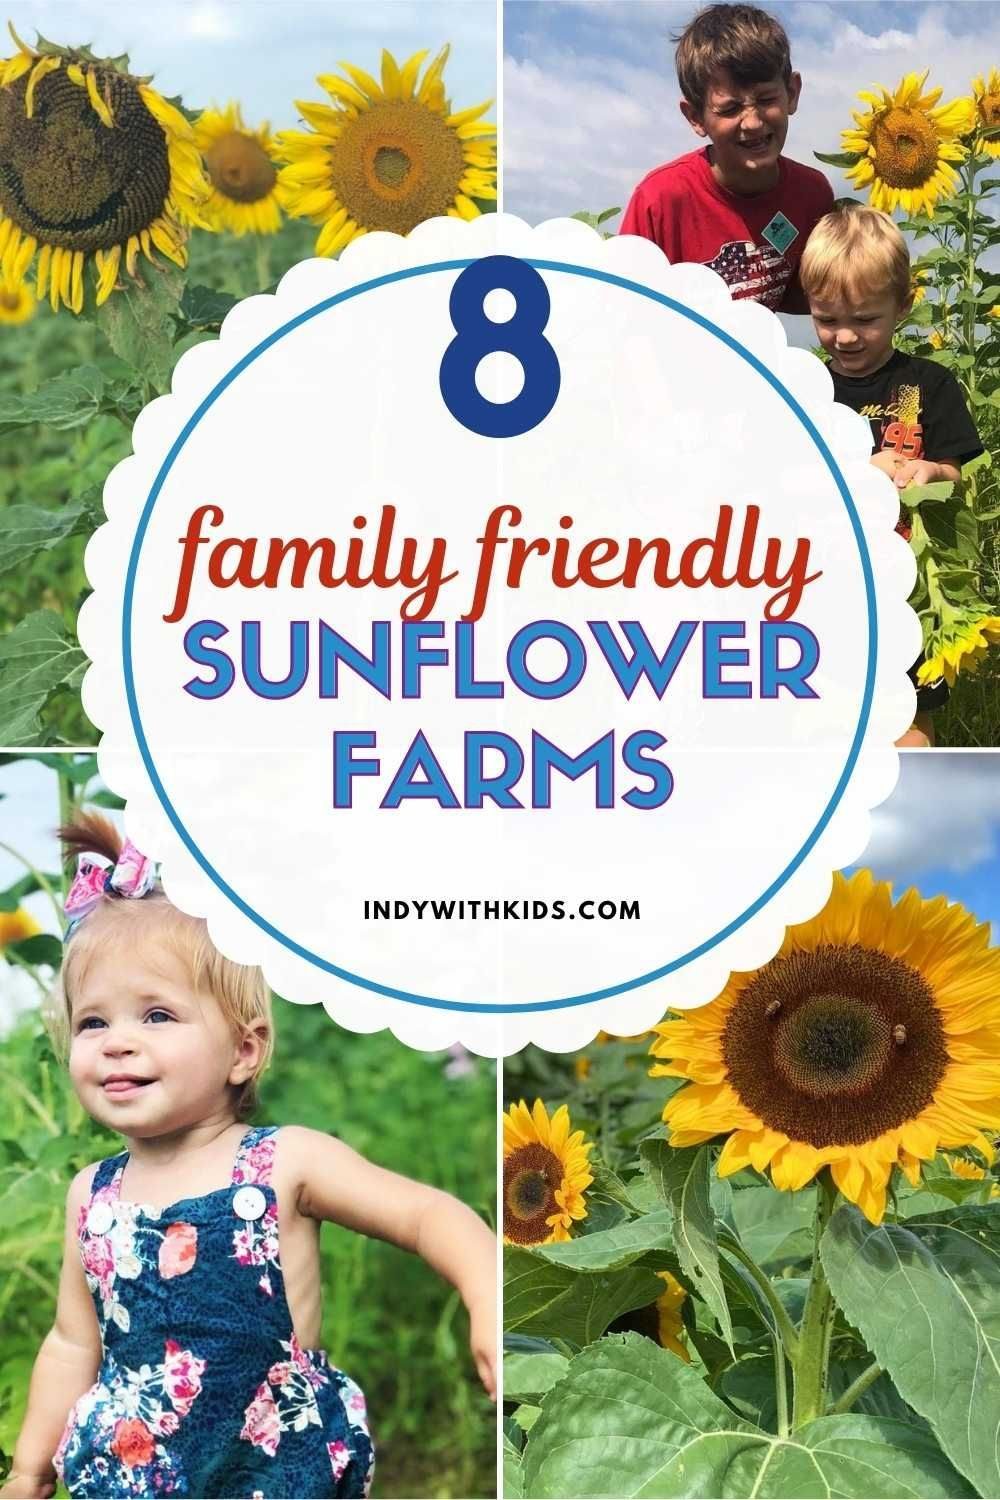 Events Near Indianapolis After Christmas 2020 8 Sunflower Farms Near Indianapolis + U Pick Flower Farms in 2020